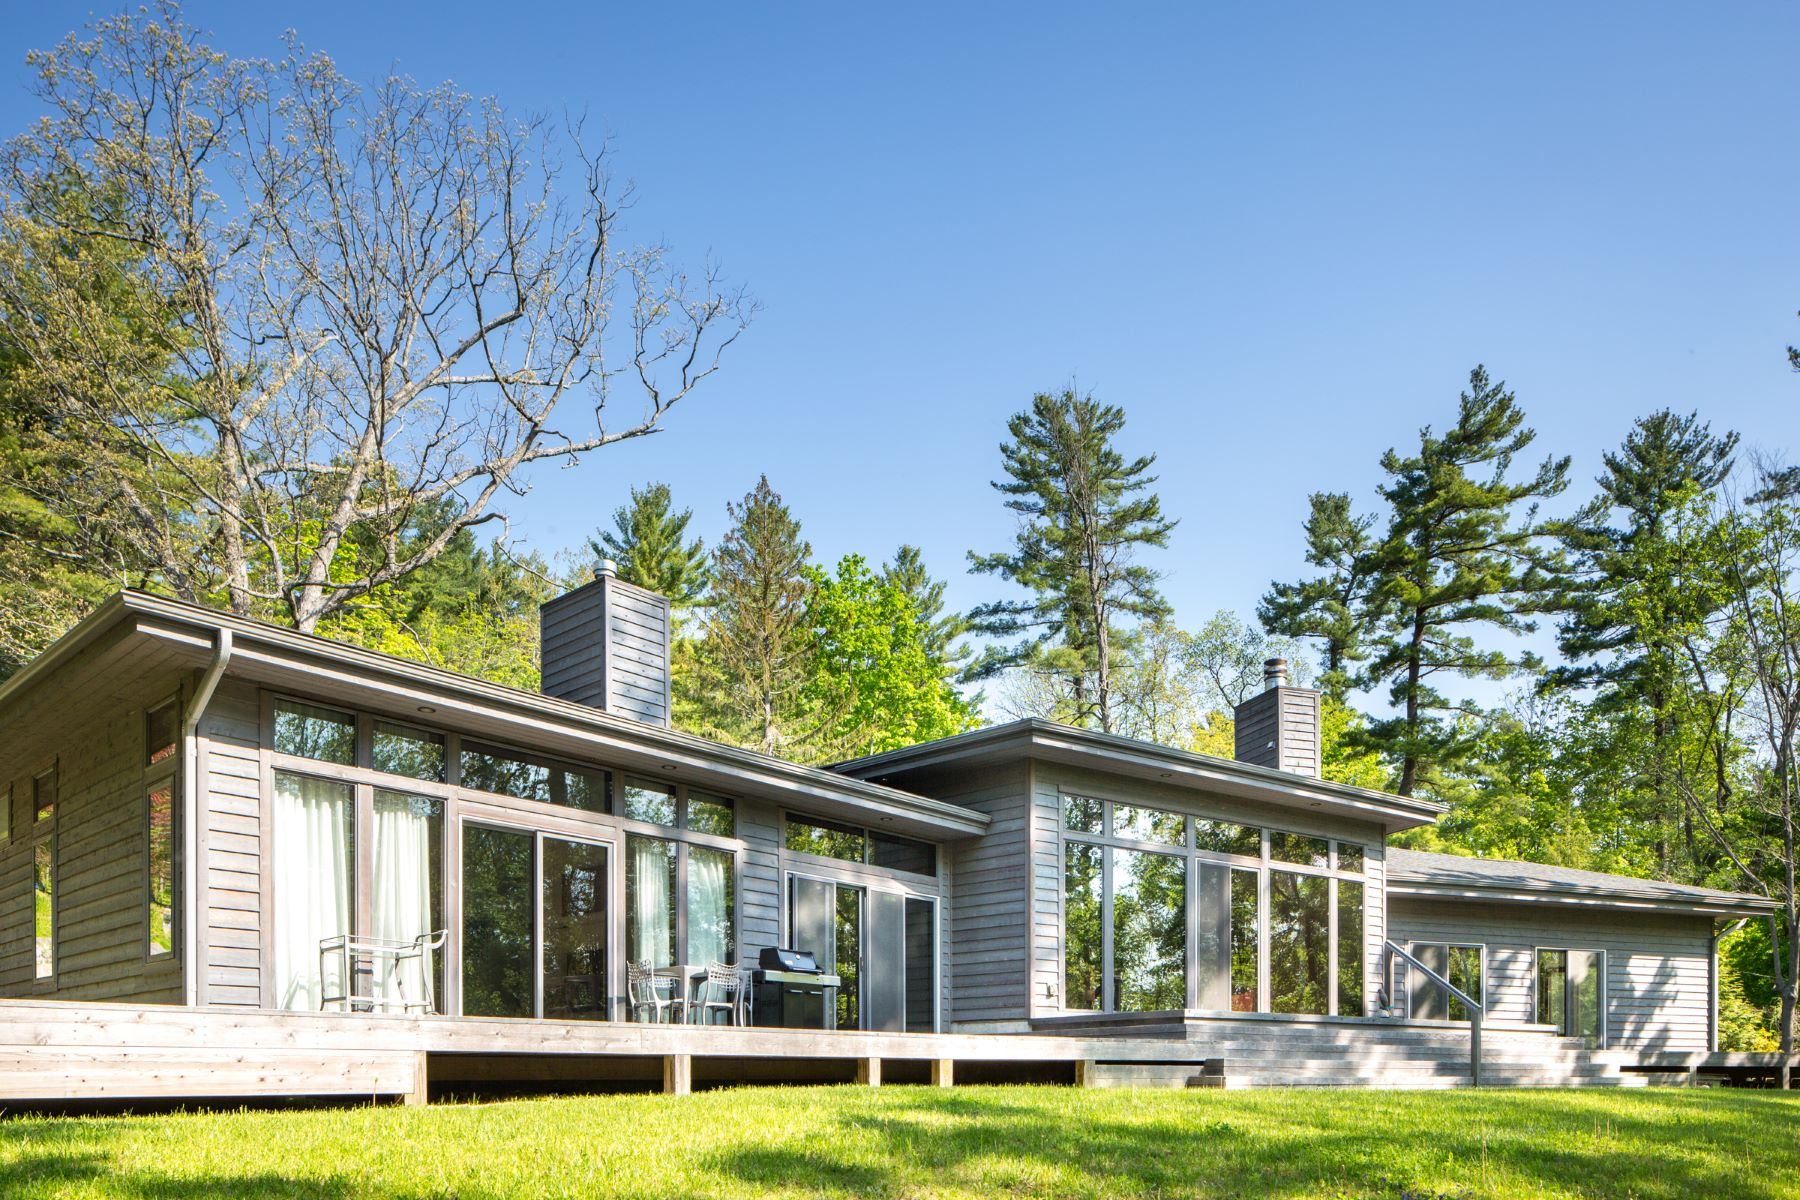 Частный односемейный дом для того Продажа на Chic, Custom-designed Contemporary on The Hill 15 Berkshire Heights Rd Great Barrington, Массачусетс 01230 Соединенные Штаты